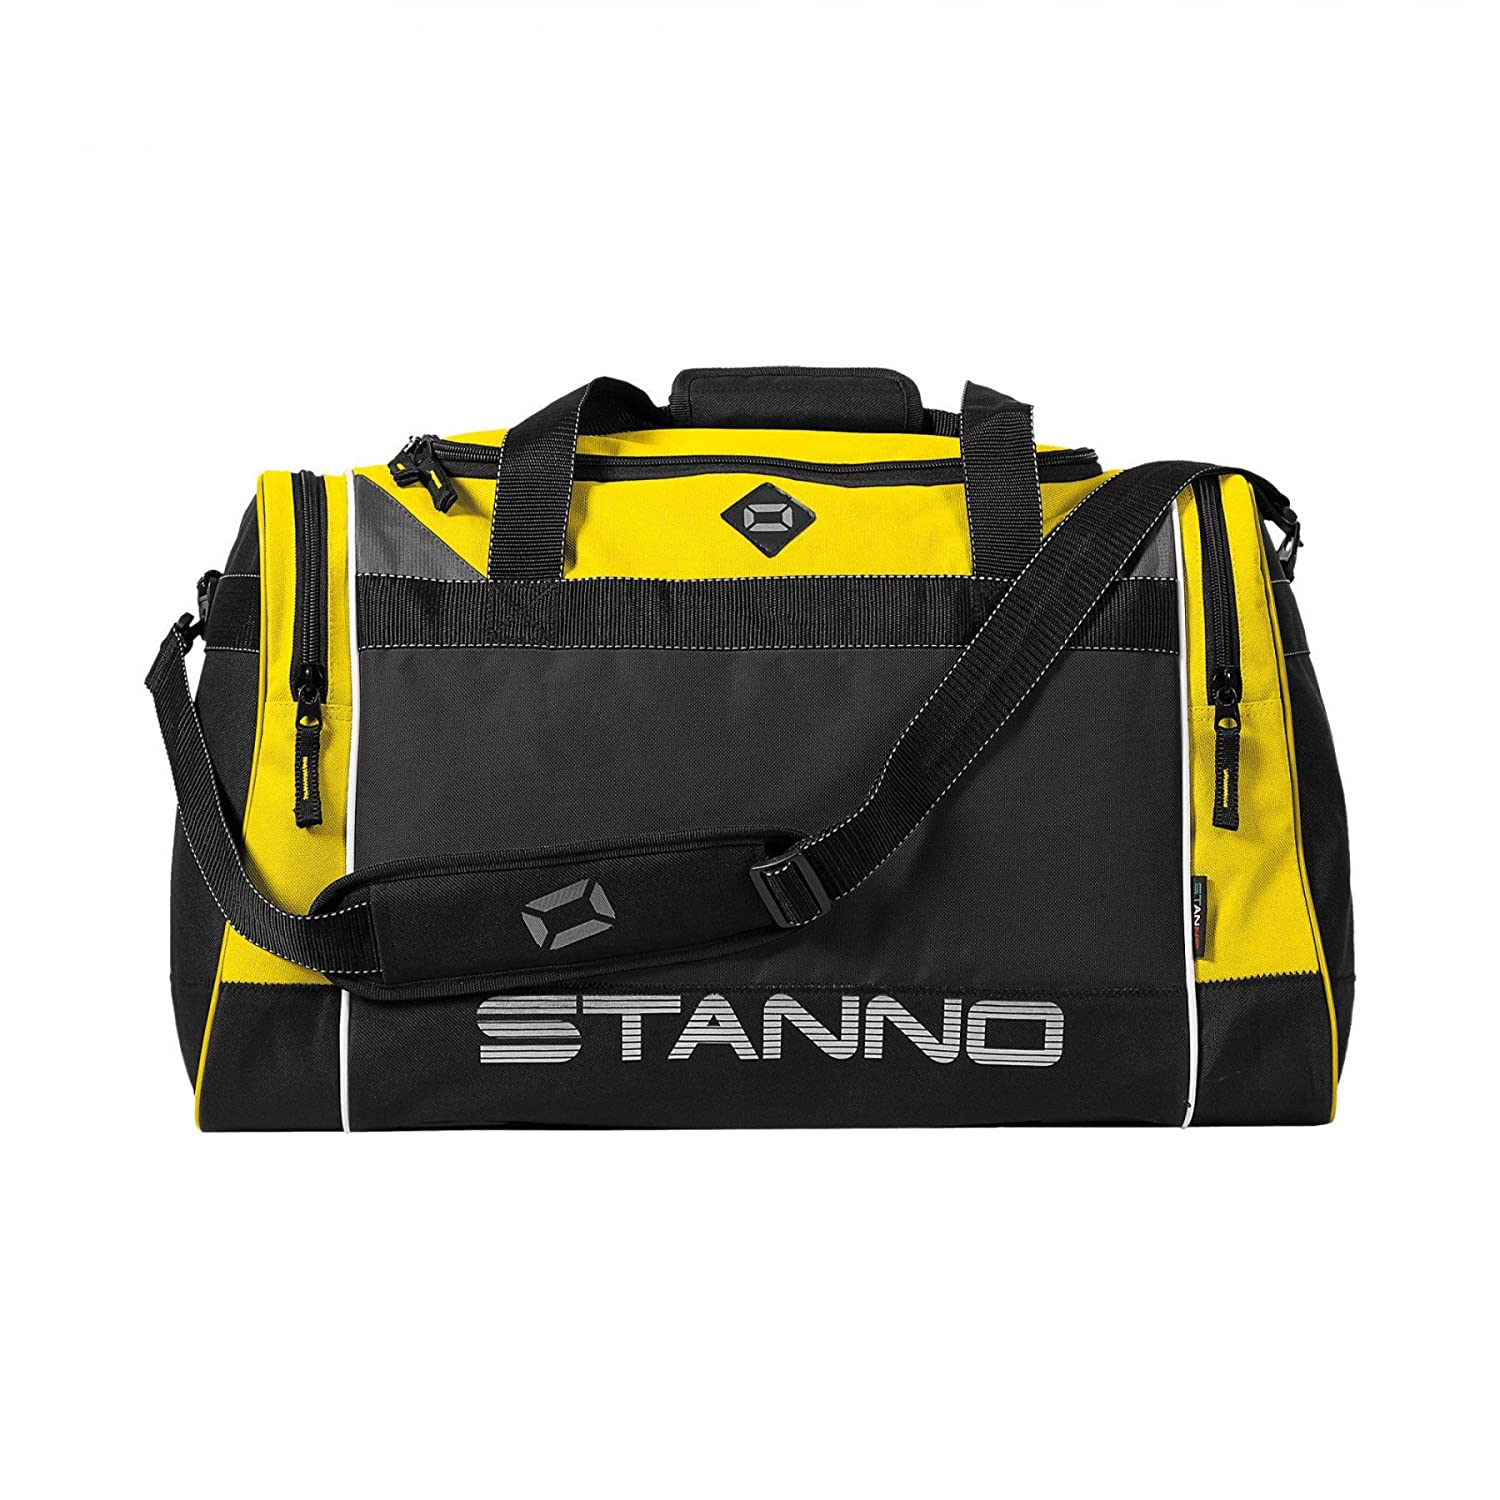 Stanno Sevilla Excellence Sports Bag  Amazon.co.uk  Sports   Outdoors 7411613d3247d